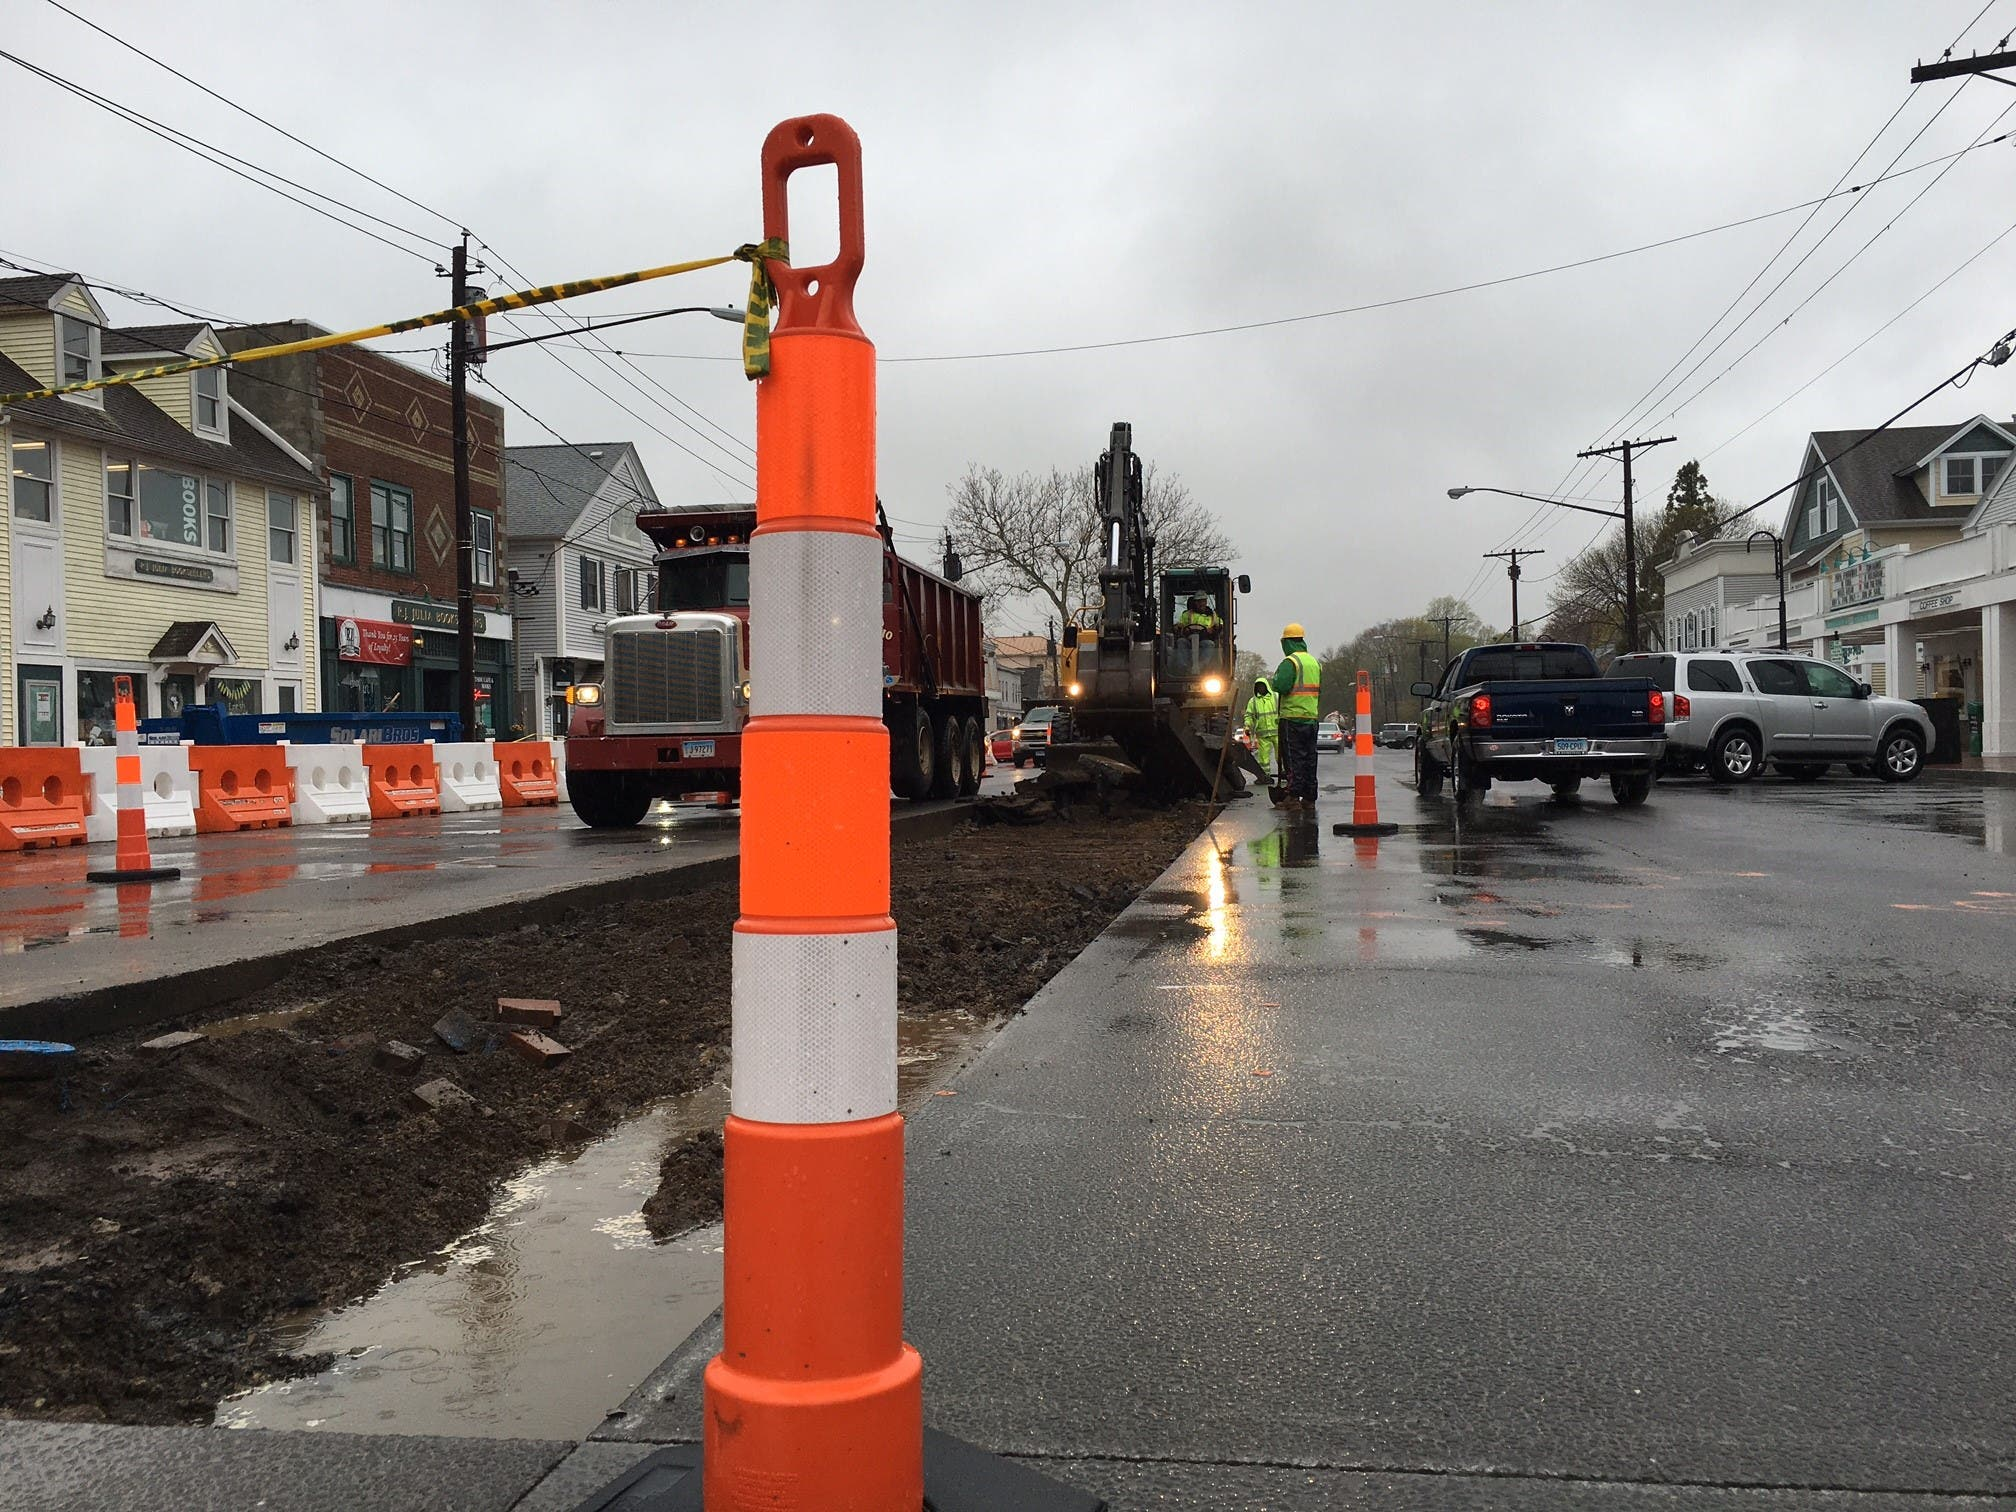 Madison Center Median Removal Today: Travel Lanes and